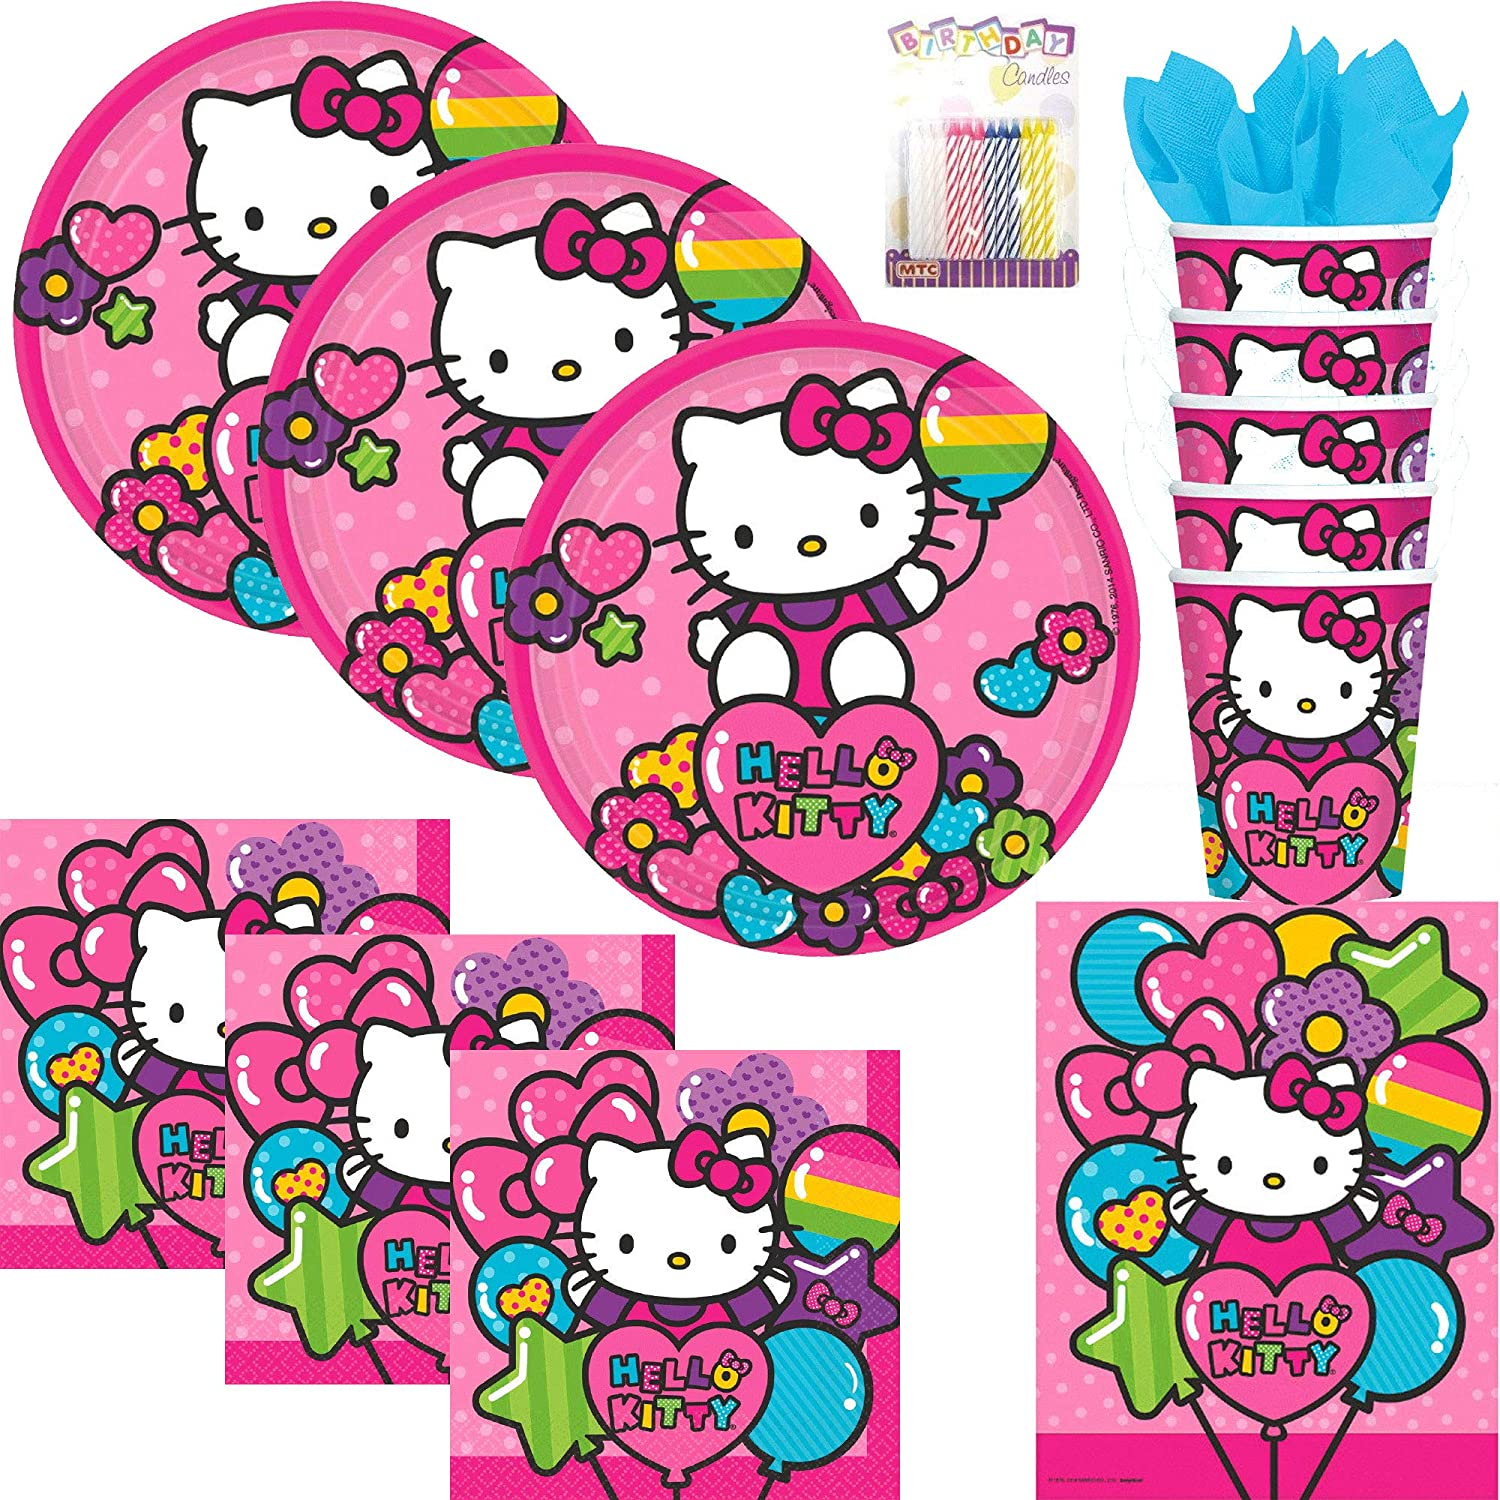 20ea3cc87 Amazon.com: Rainbow Hello Kitty Party Supplies Pack Serves 16: Dessert  Plates, Napkins, Cups, Table Cover and Birthday Candles: Toys & Games